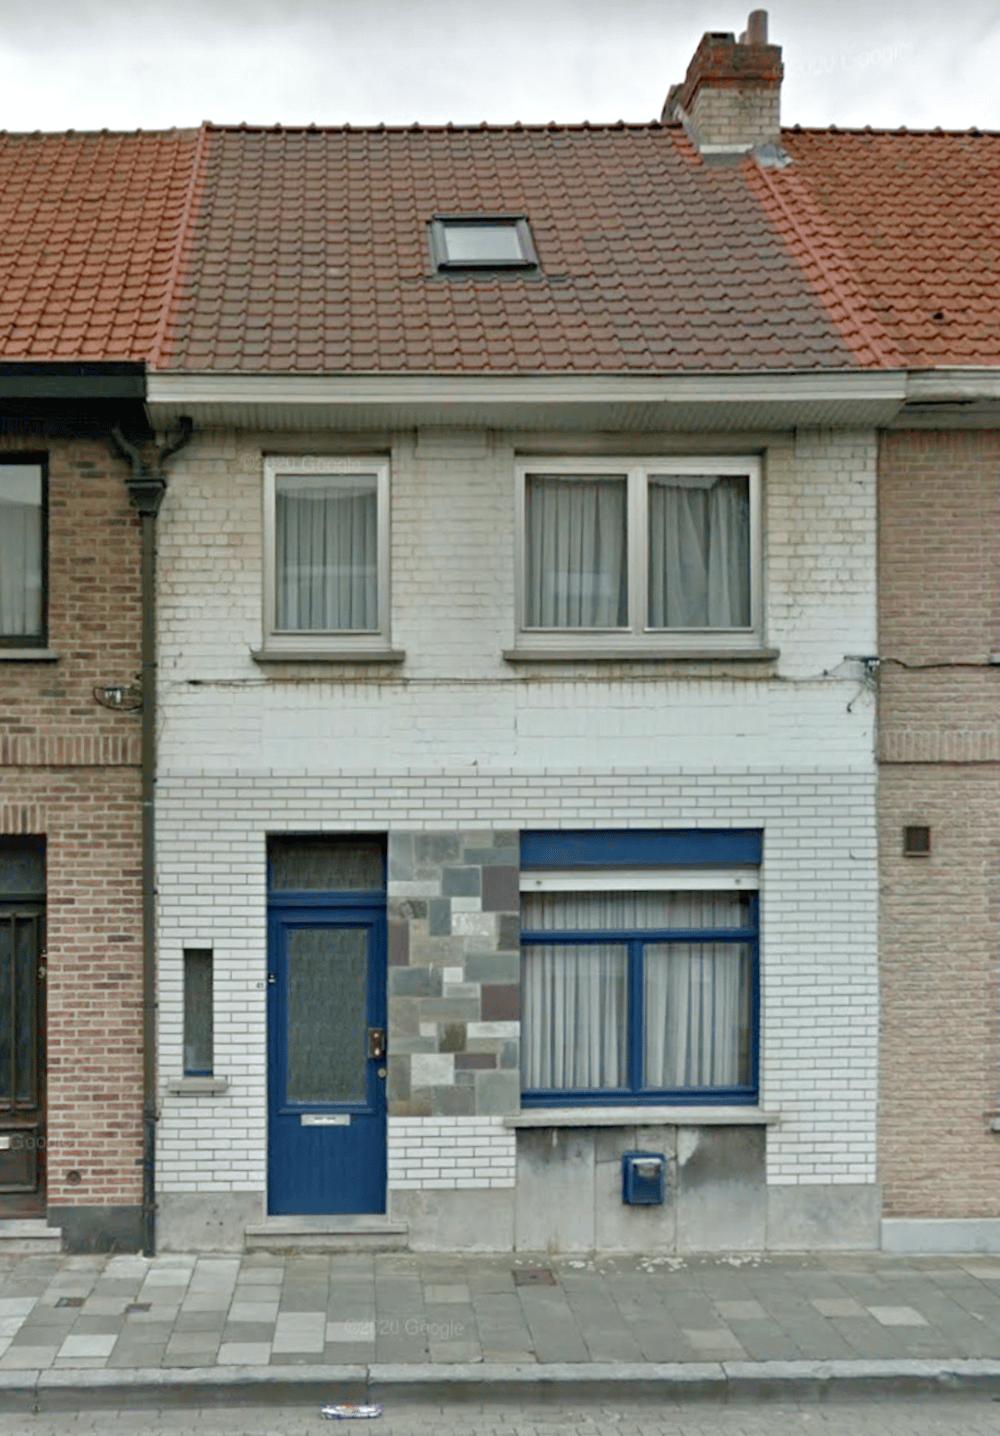 Ghent, Belgium - image 2 - student project